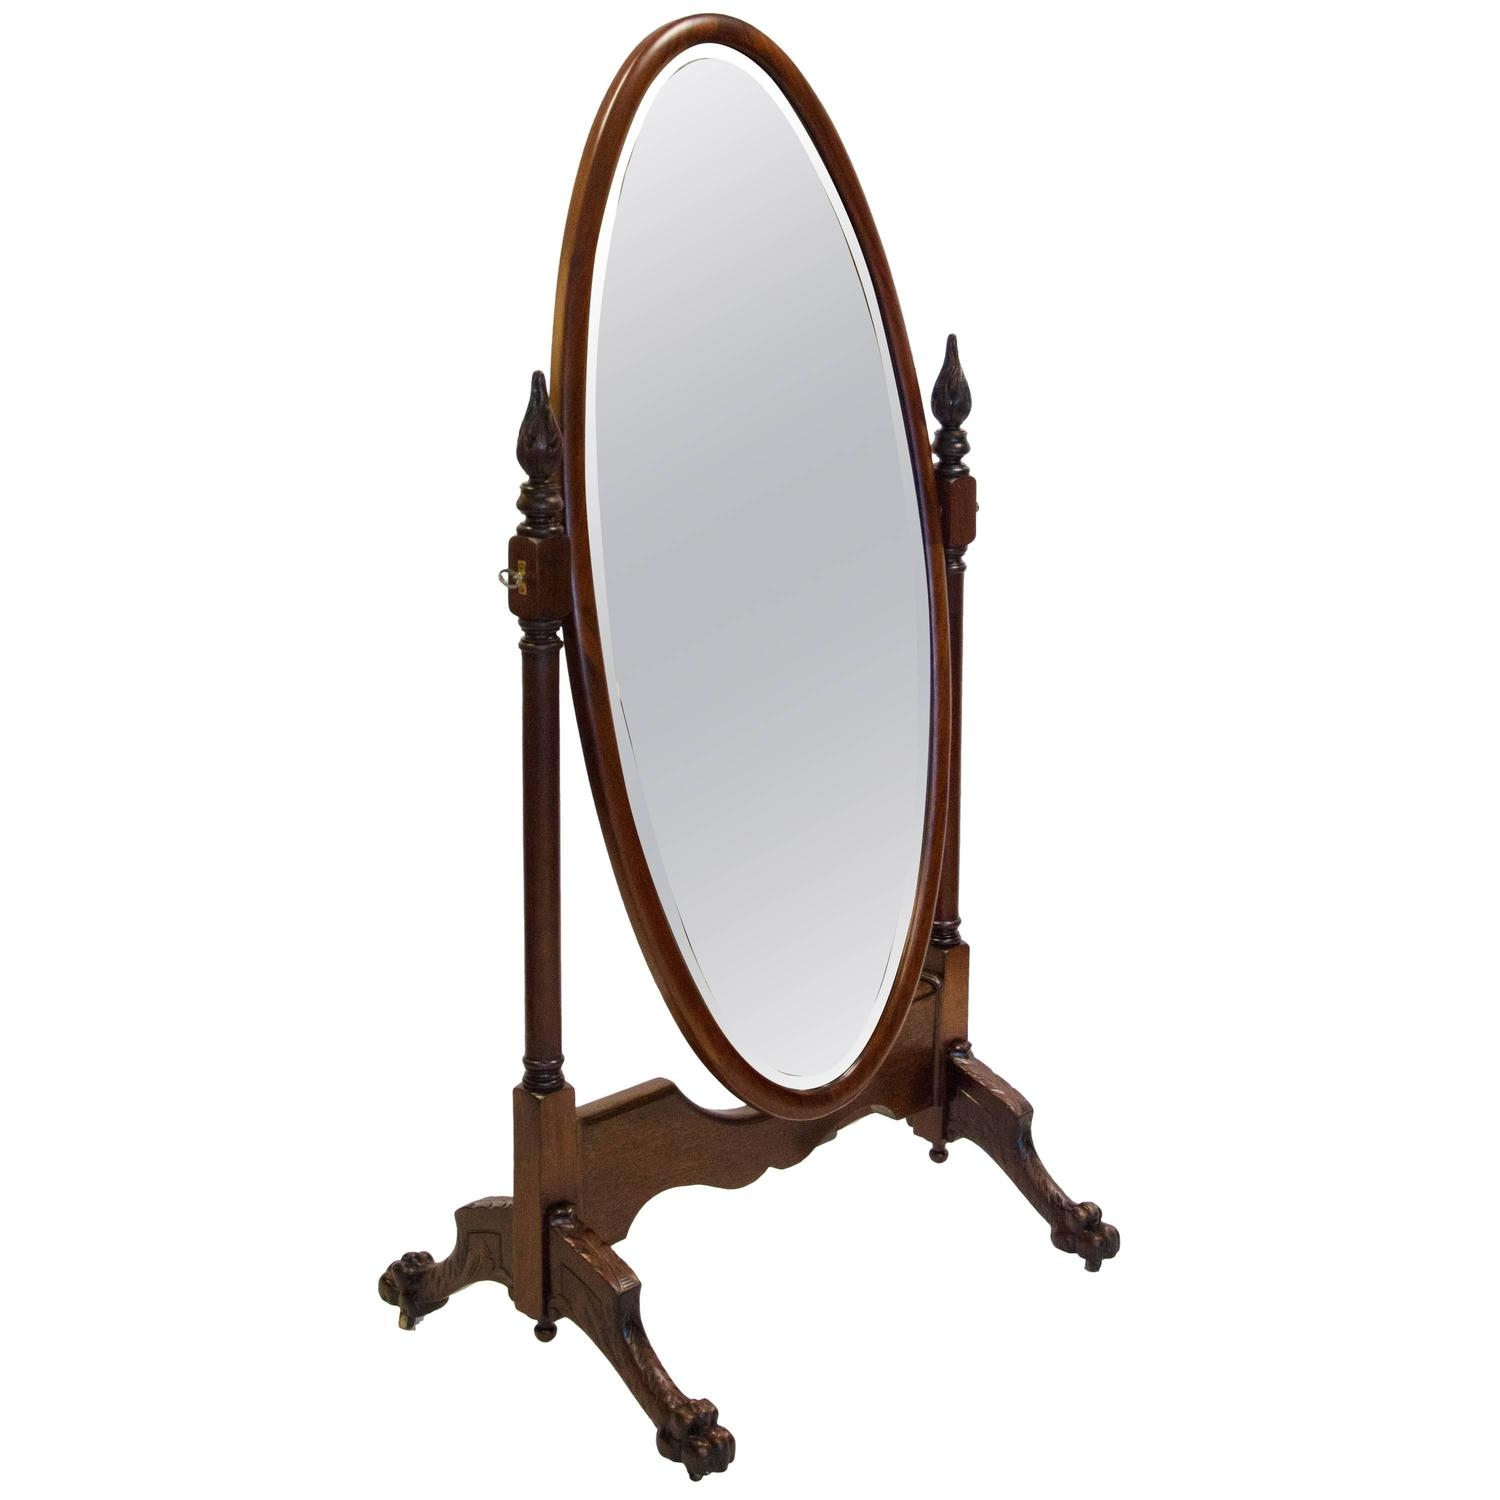 Antique Vintage Floor Mirrors And Full Length Mirrors For Sale For Vintage Full Length Mirrors (Image 1 of 15)